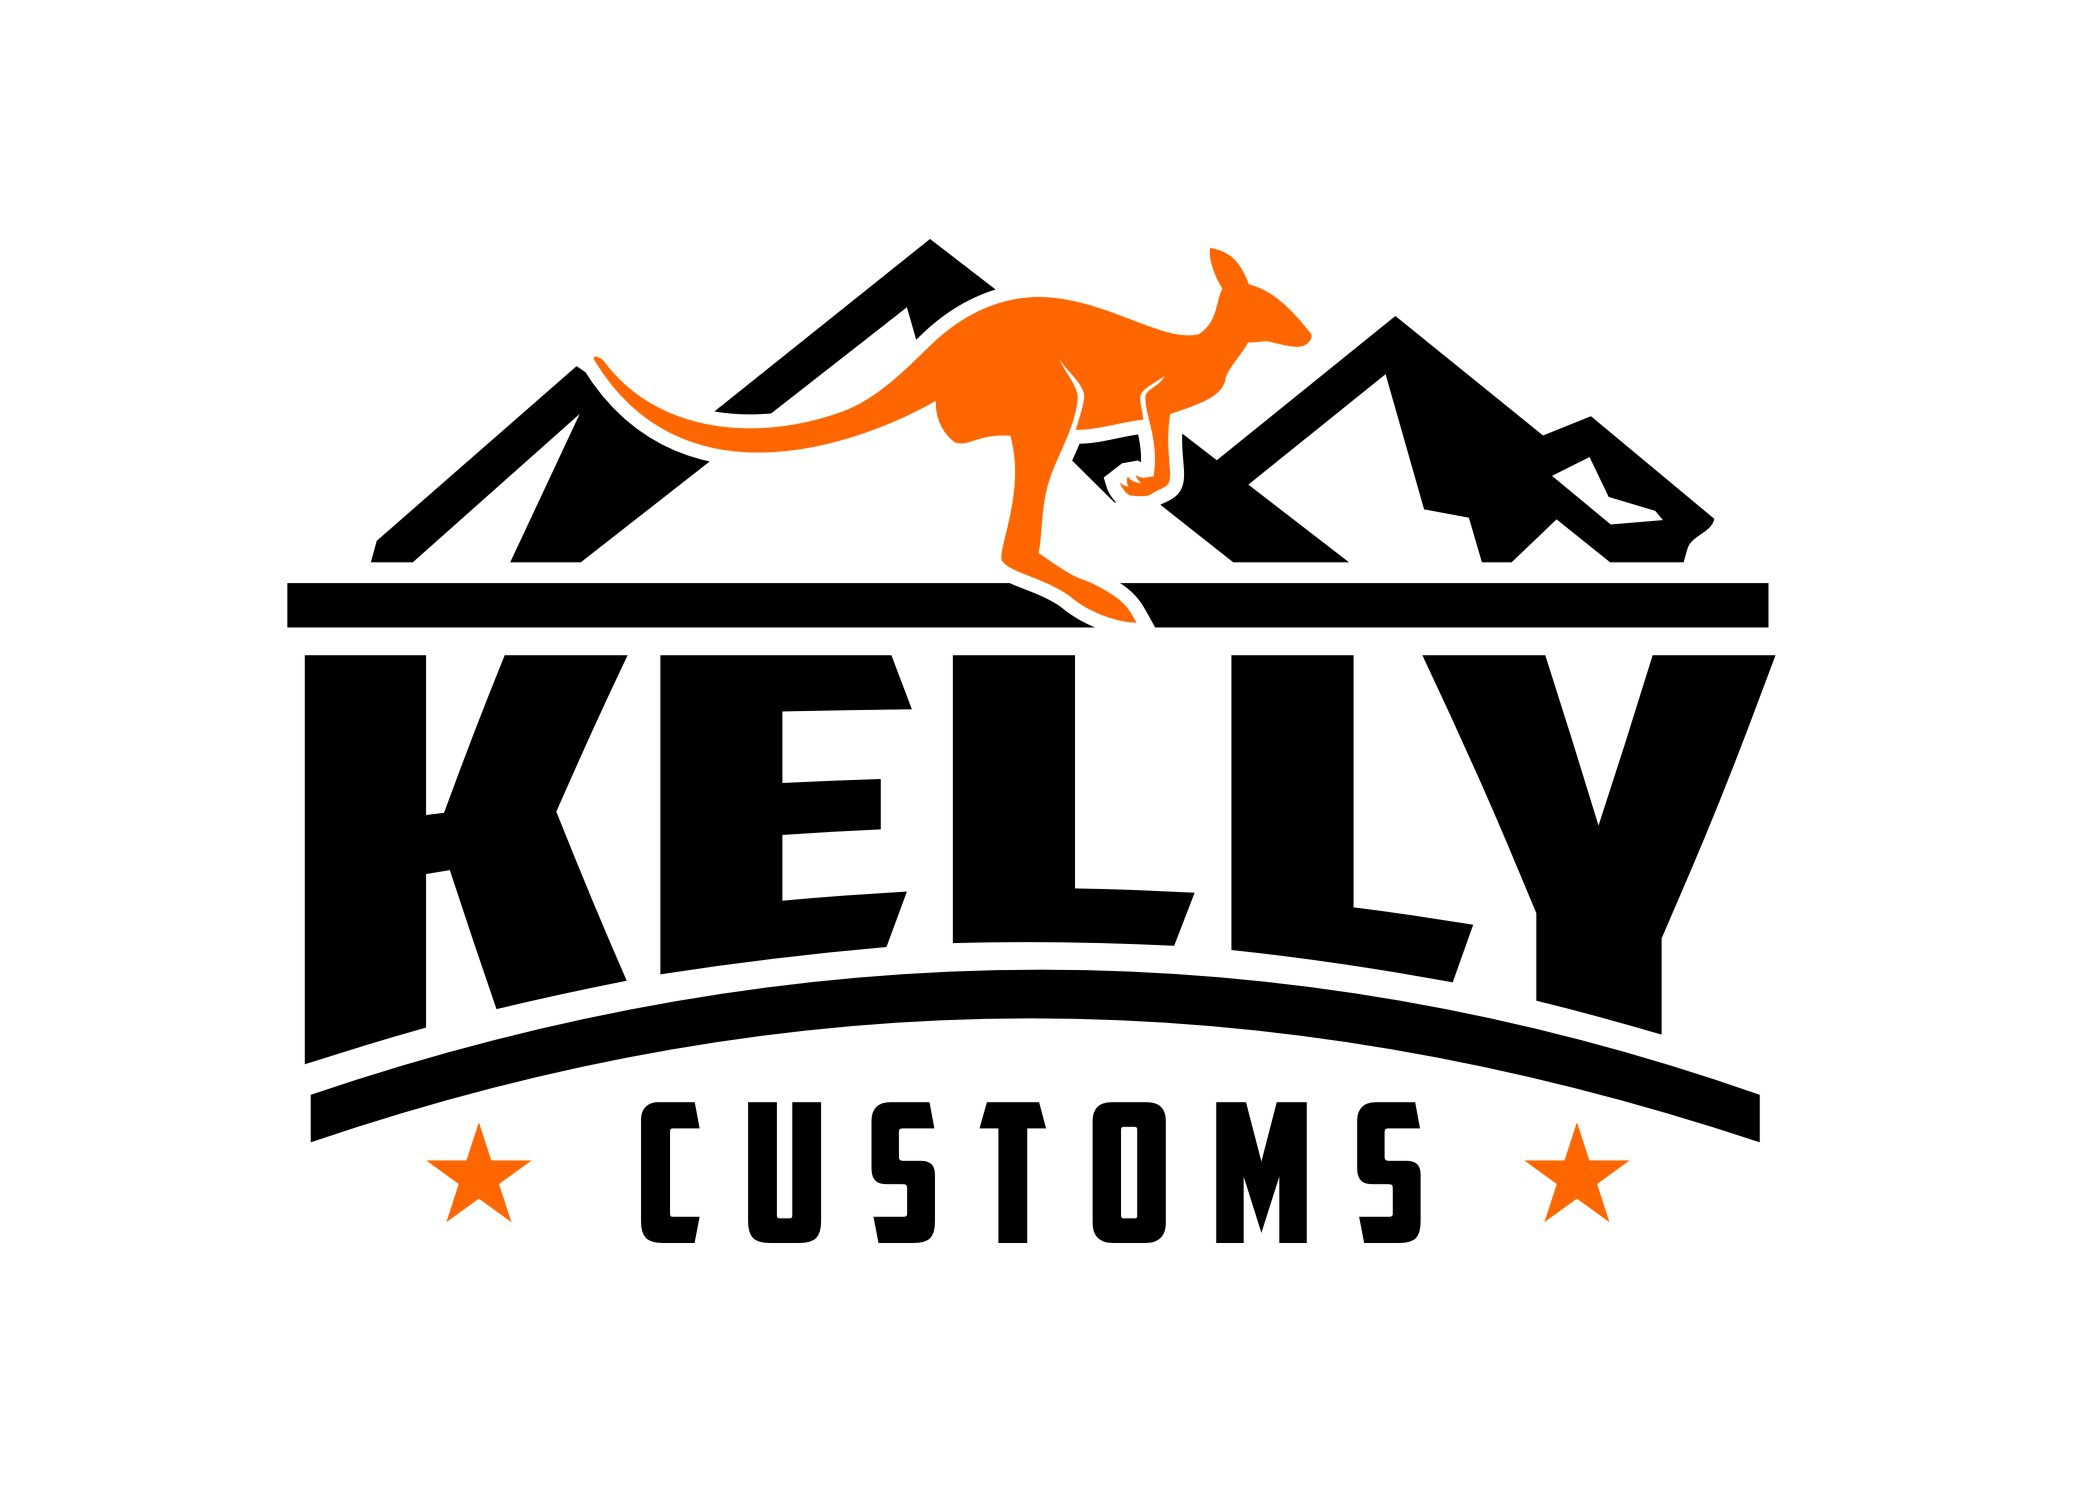 Logo that associates with Australian outdoors and adventure